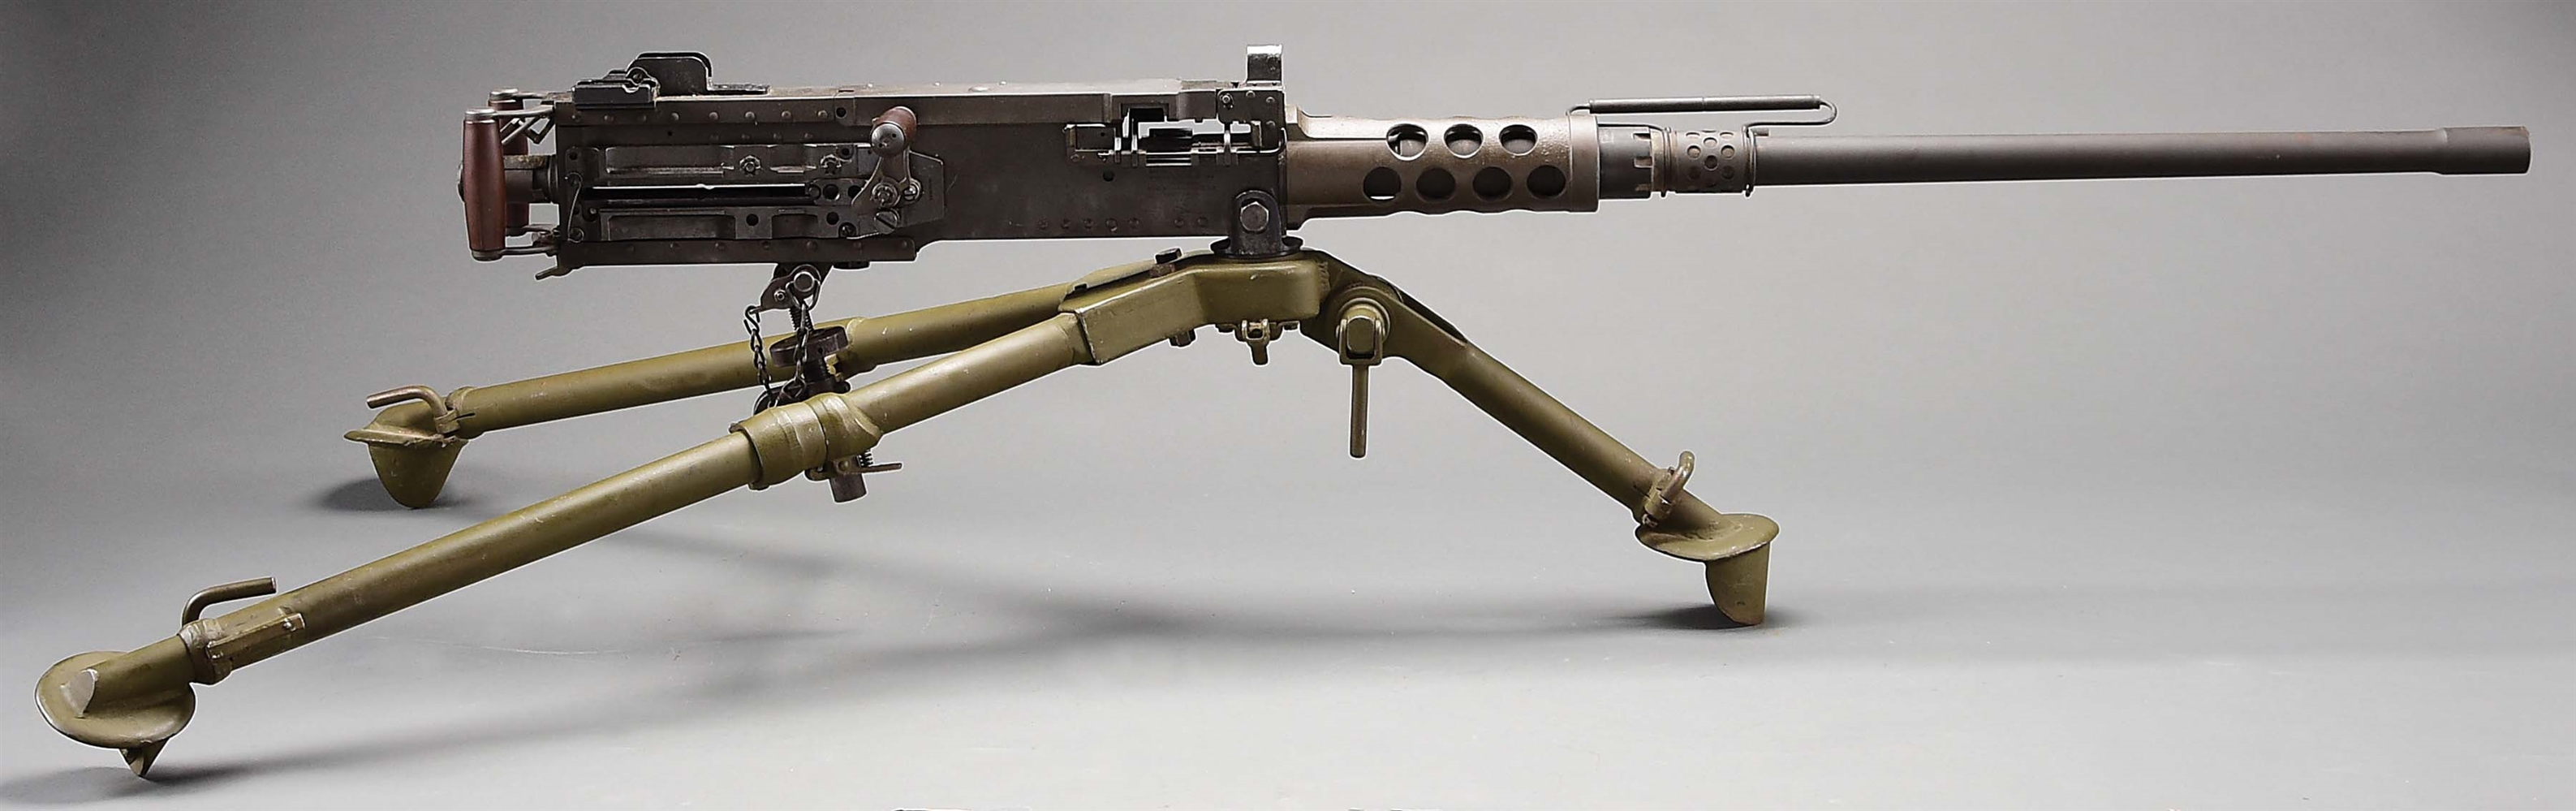 (N) NEAR MINT RAMO SIDEPLATE BROWNING M2 .50 CAL MACHINE GUN ON GROUND TRIPOD (FULLY TRANSFERABLE).